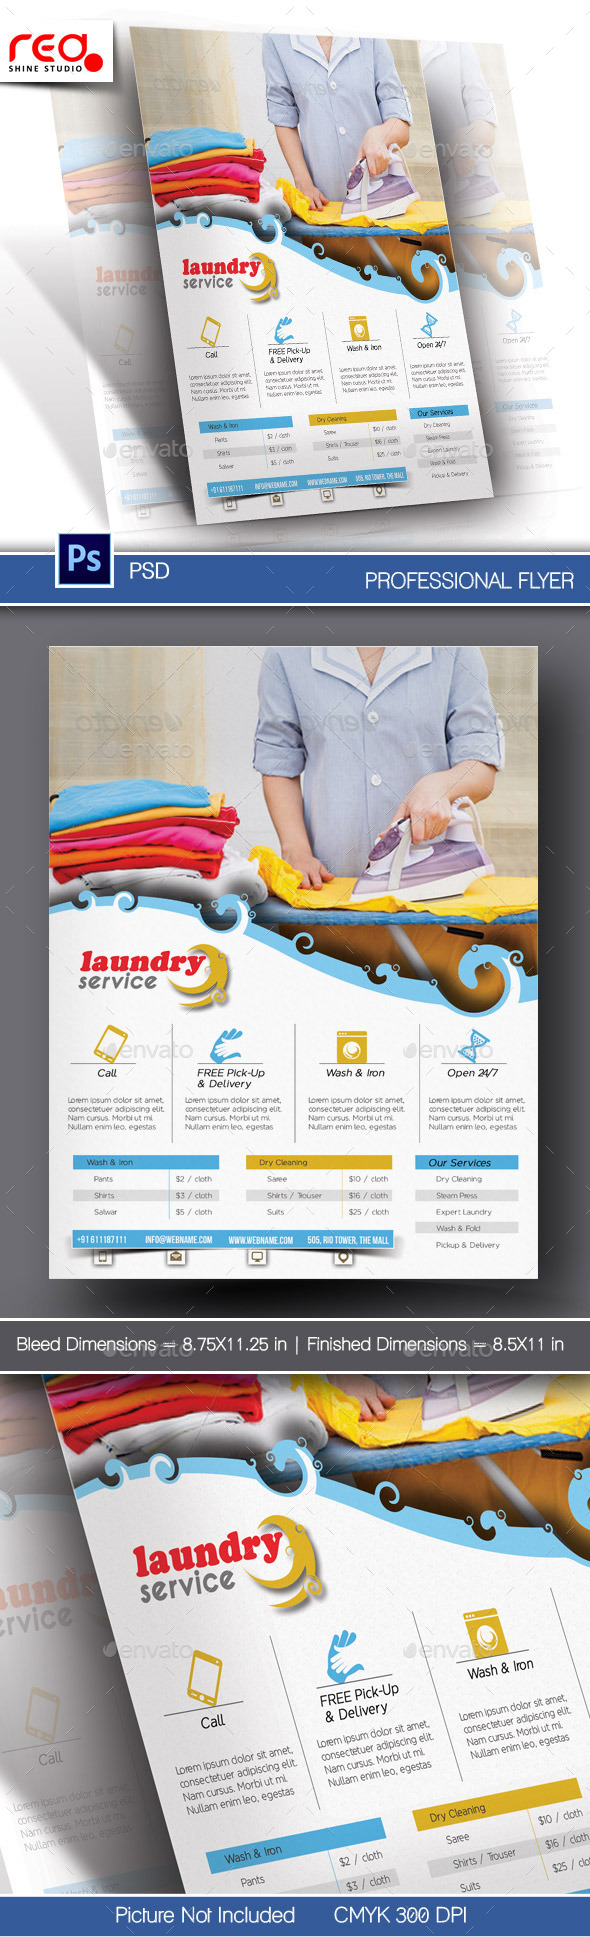 GraphicRiver Laundry Service Flyer & Poster Template 10901339